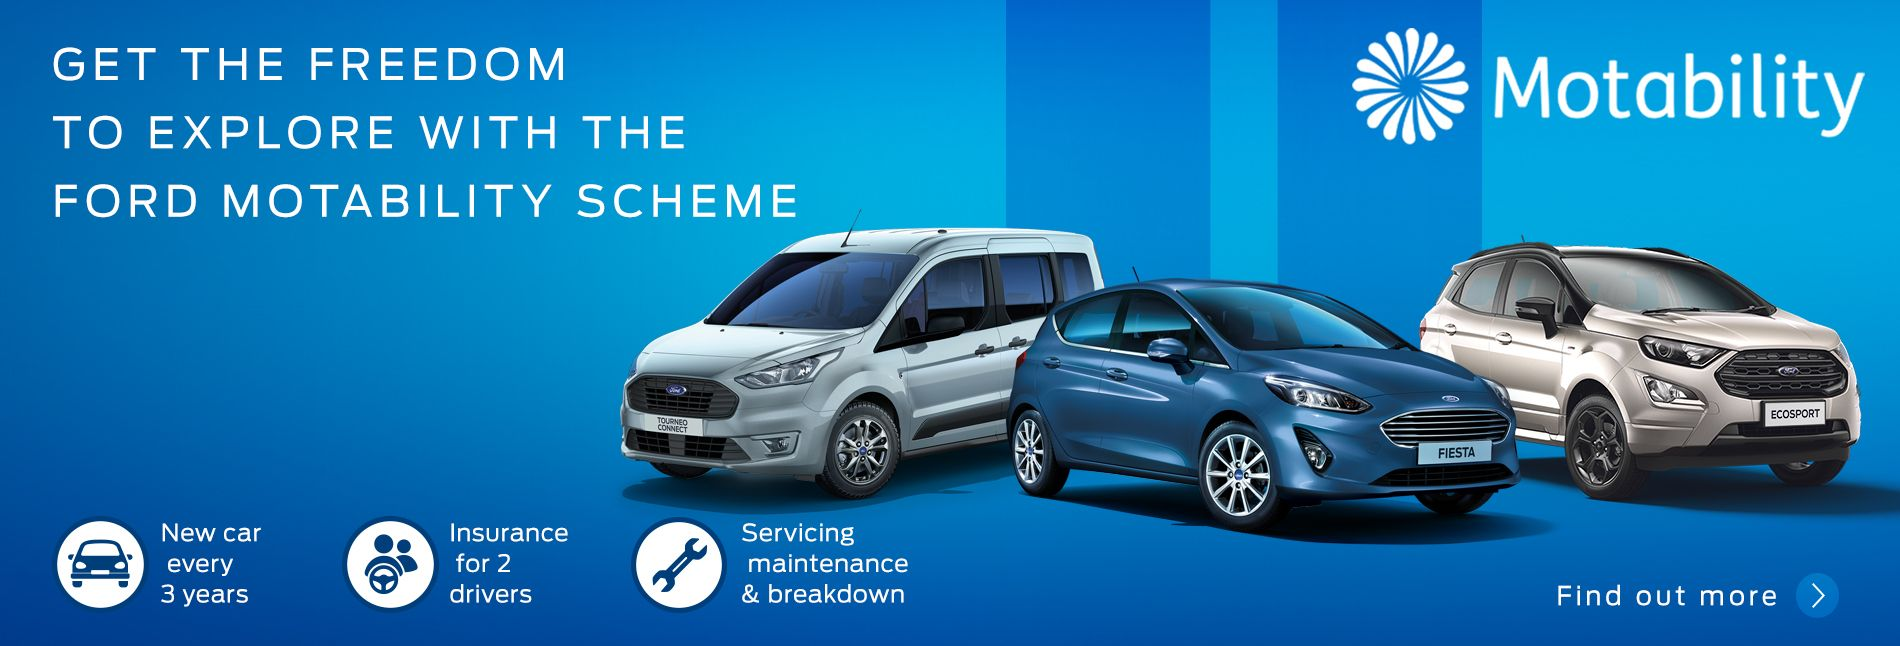 Ford Motability at Johnstone's Garage